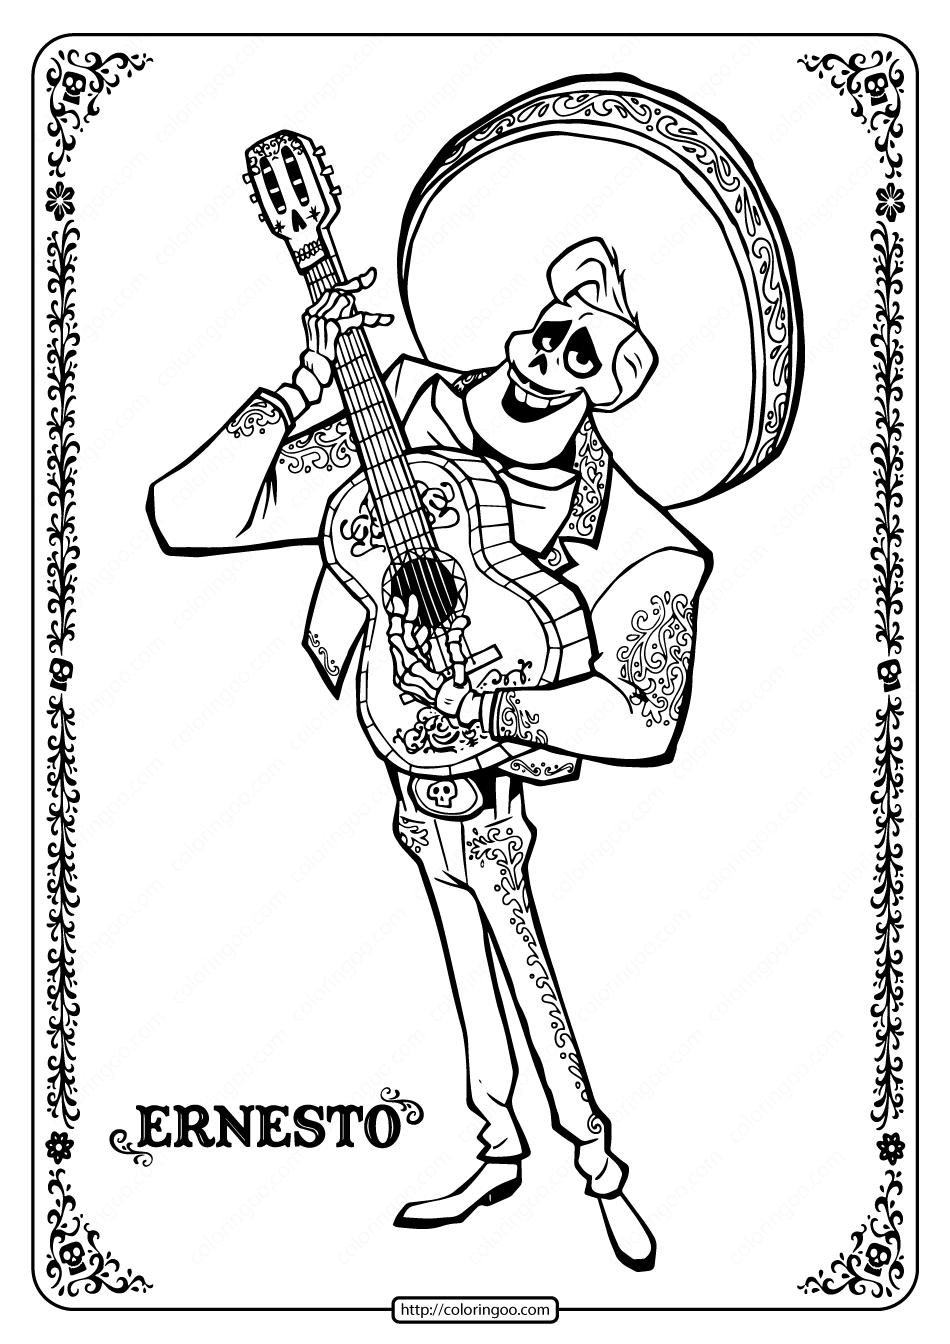 Printable Disney Coco Ernesto Coloring Pages